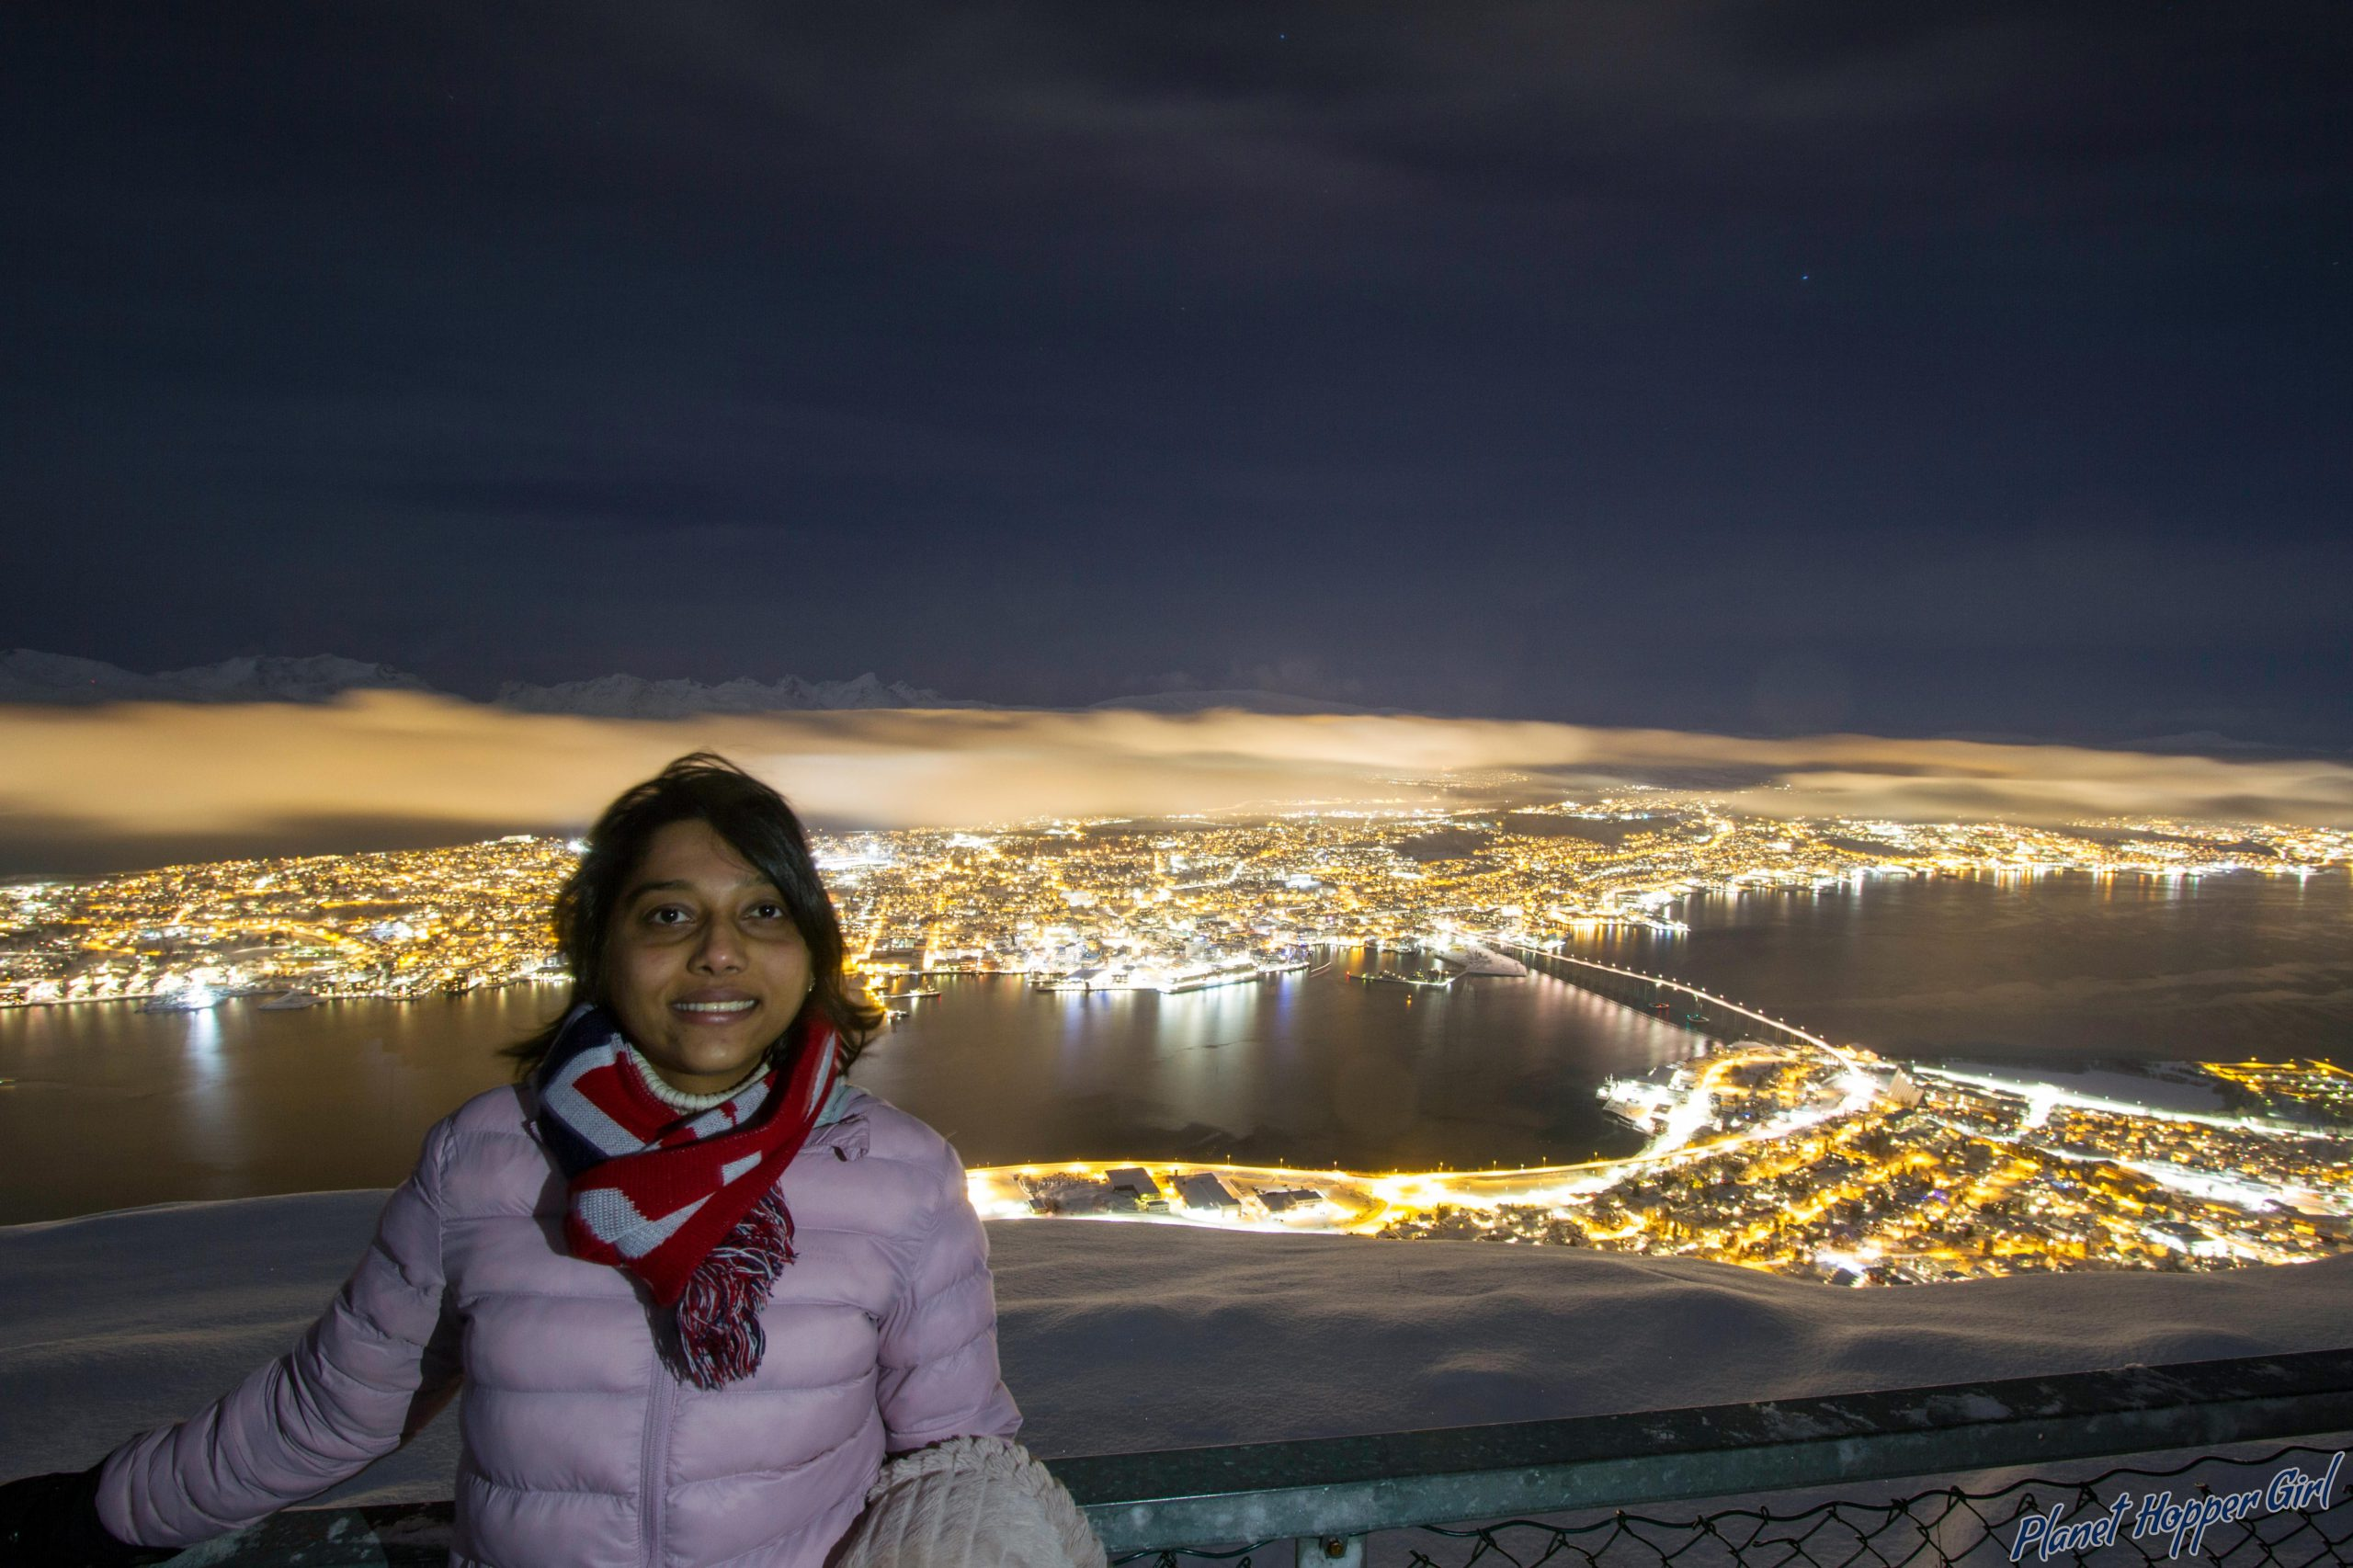 The Tromso City view at night, Norway